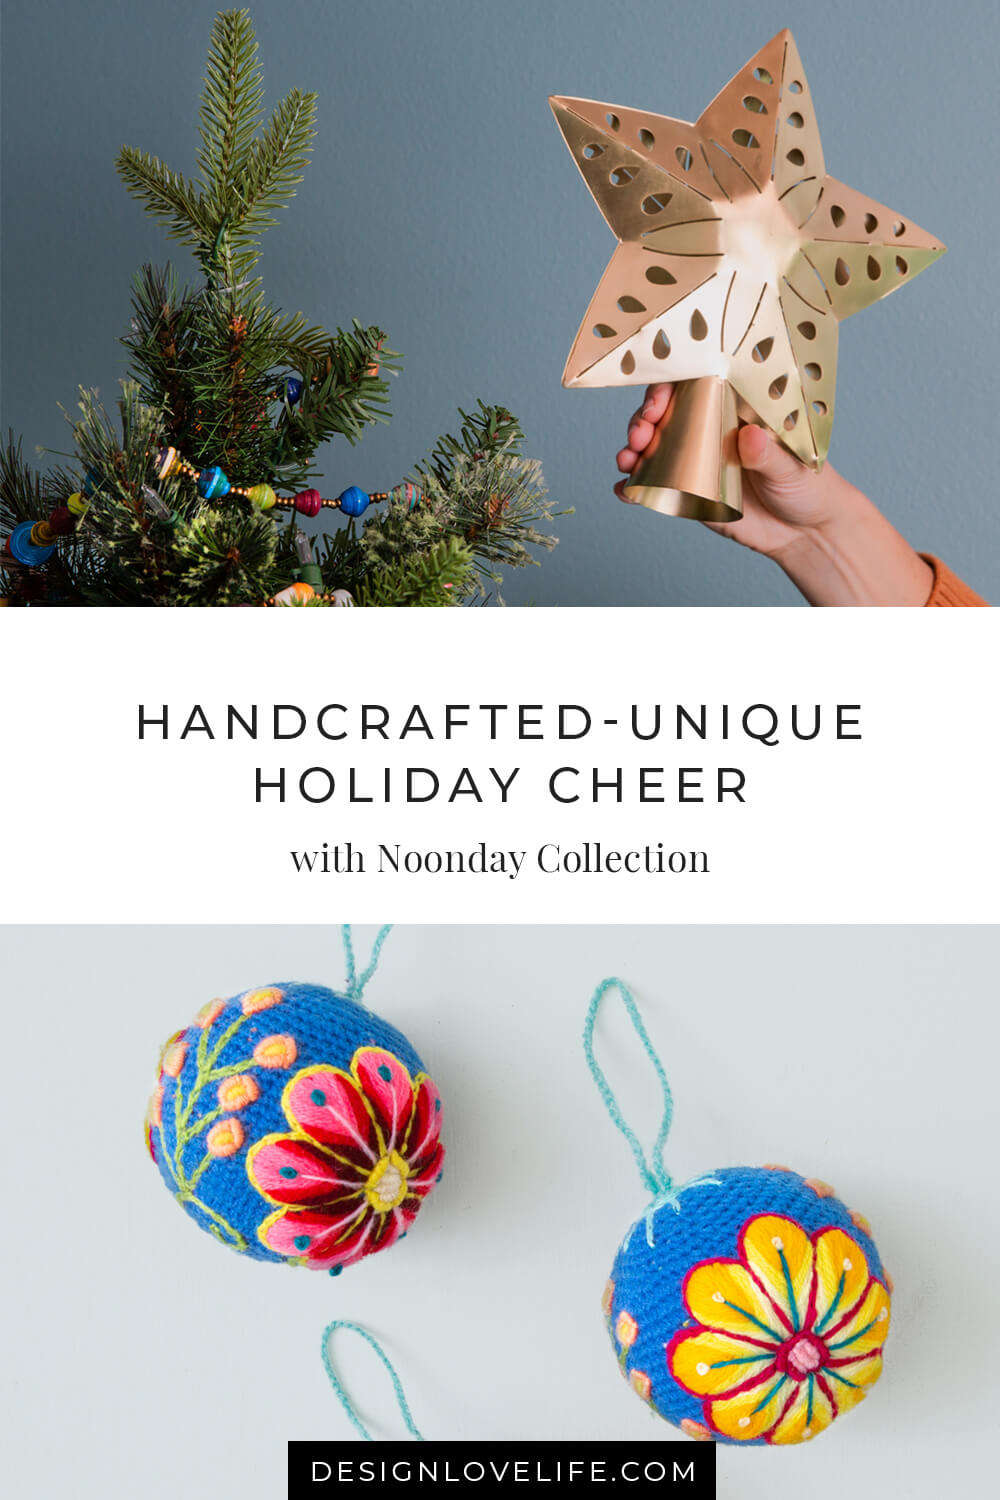 Unique Handmade Gifts by handcrafted Artisans from around the world. Great ideas for Christmas and the Holidays with Noonday Collection and Annie Johnson.